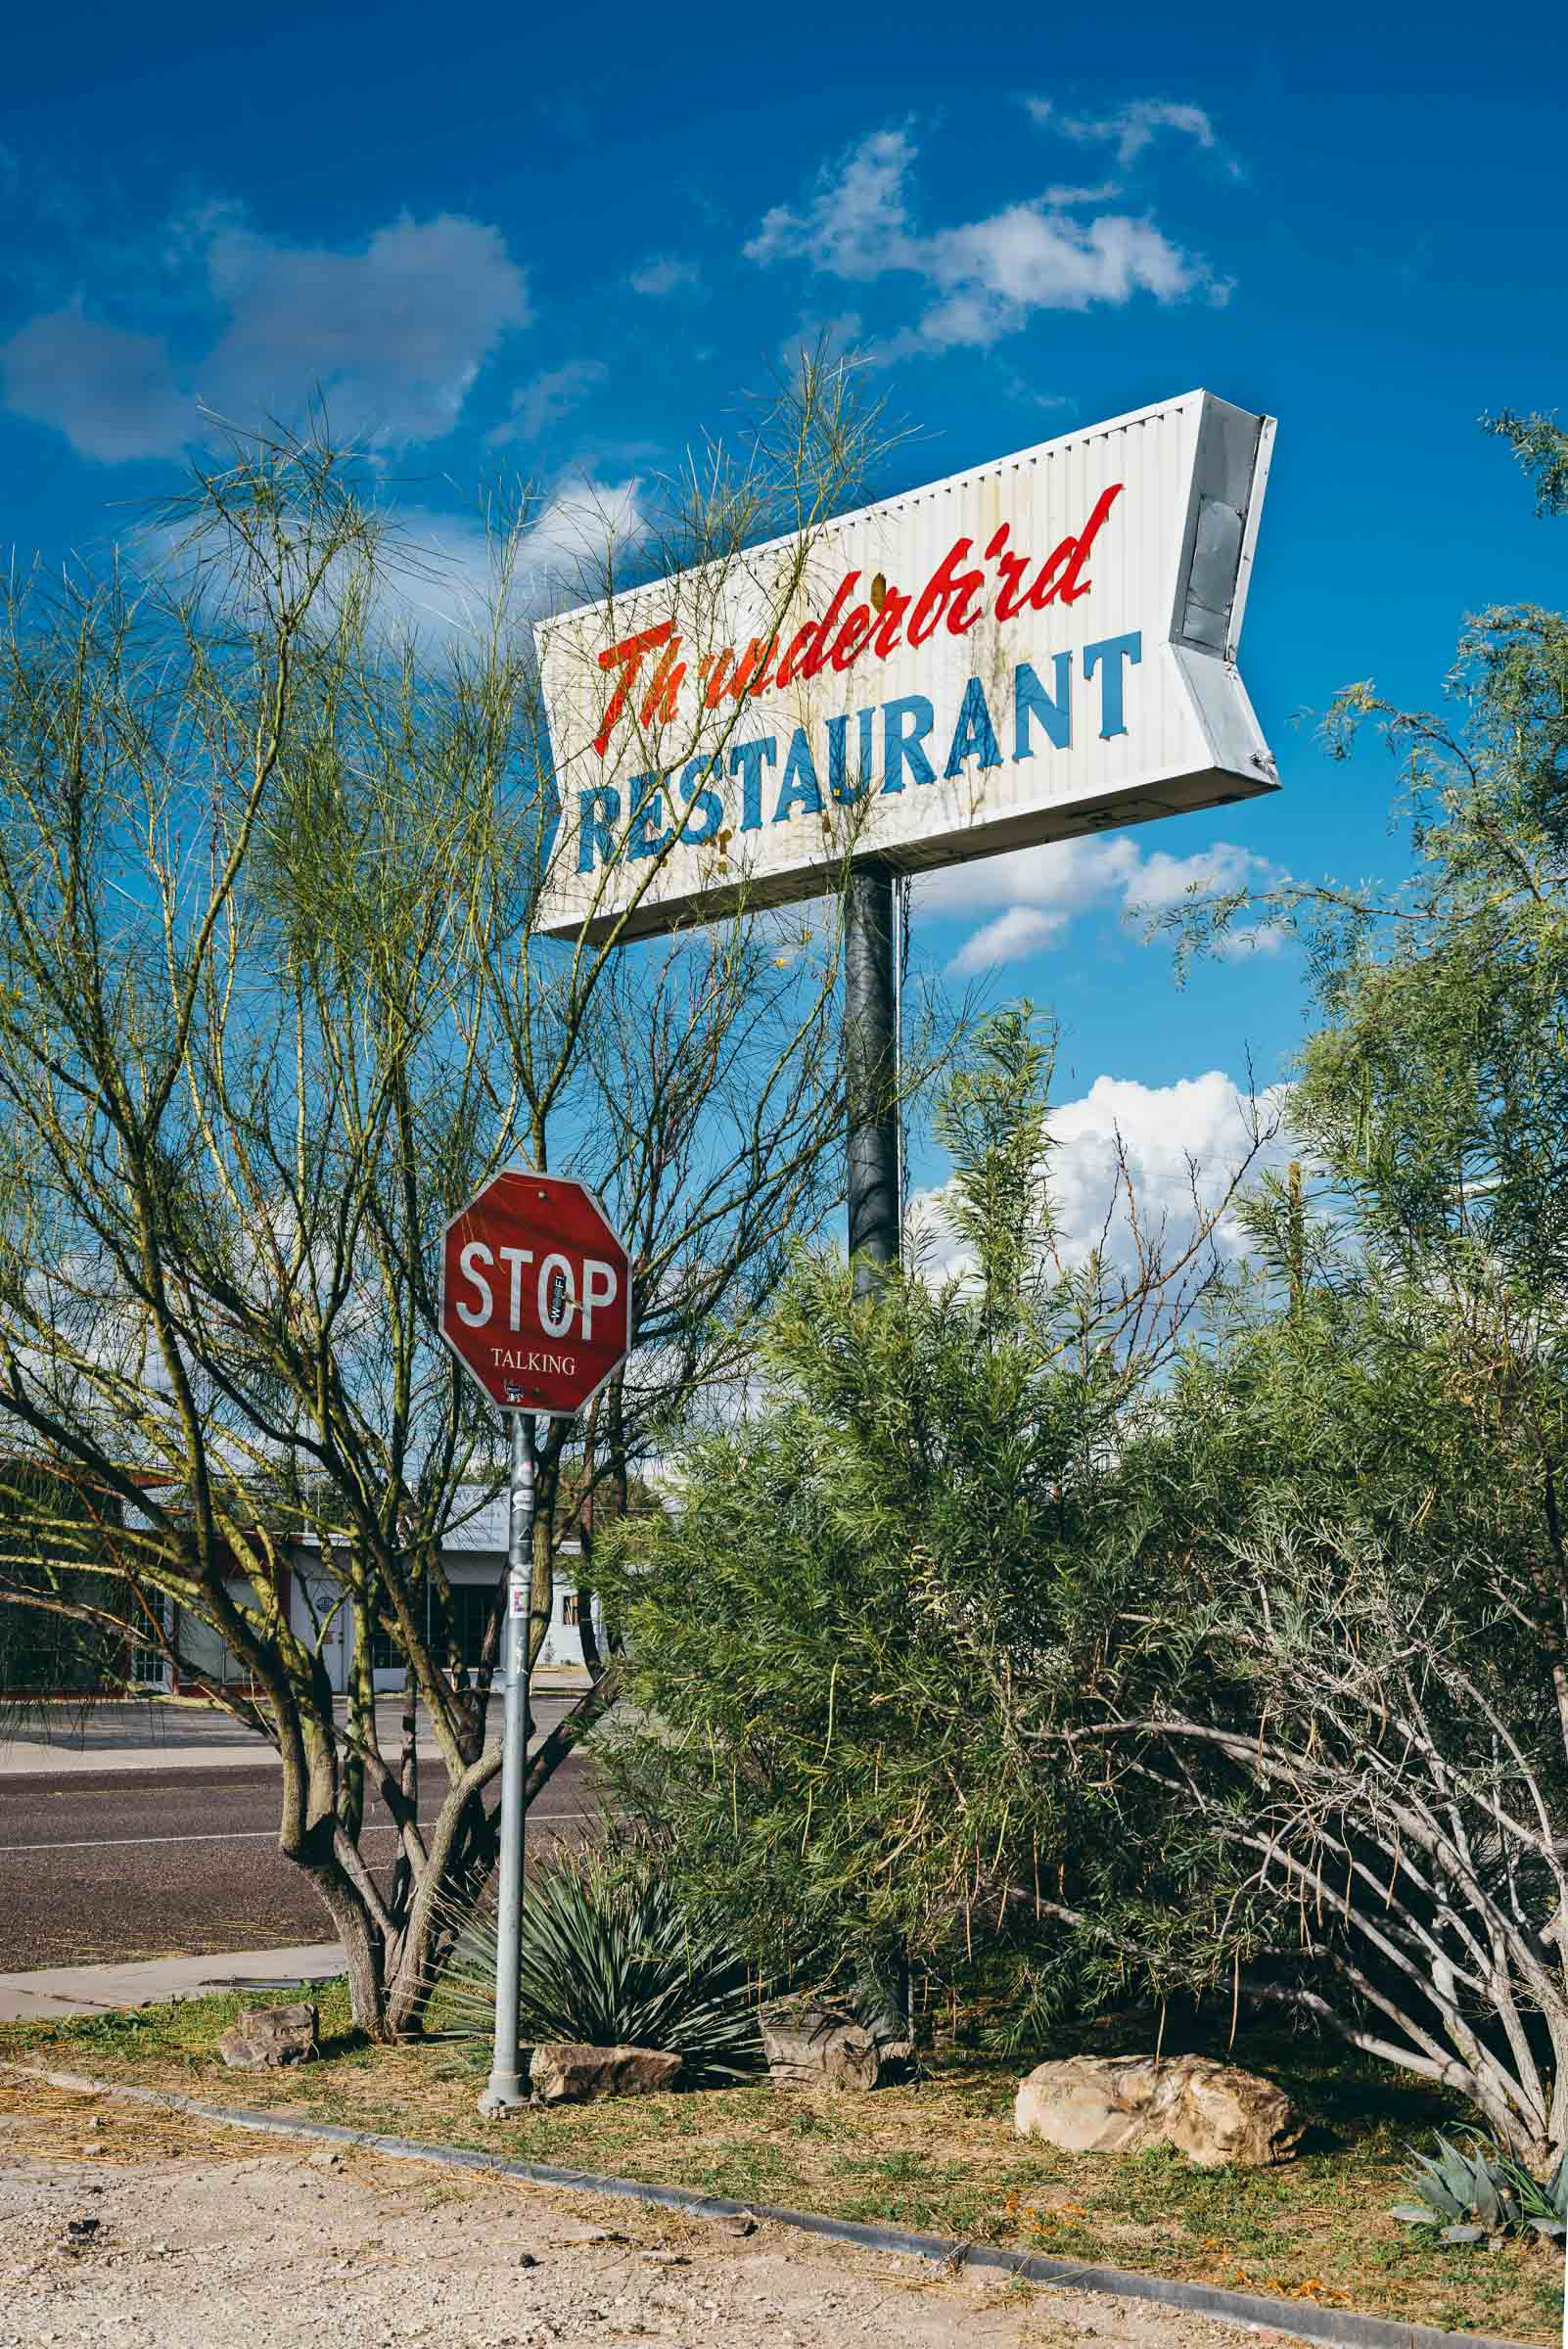 Thunderbird Restaurant Sign, Marfa-TX